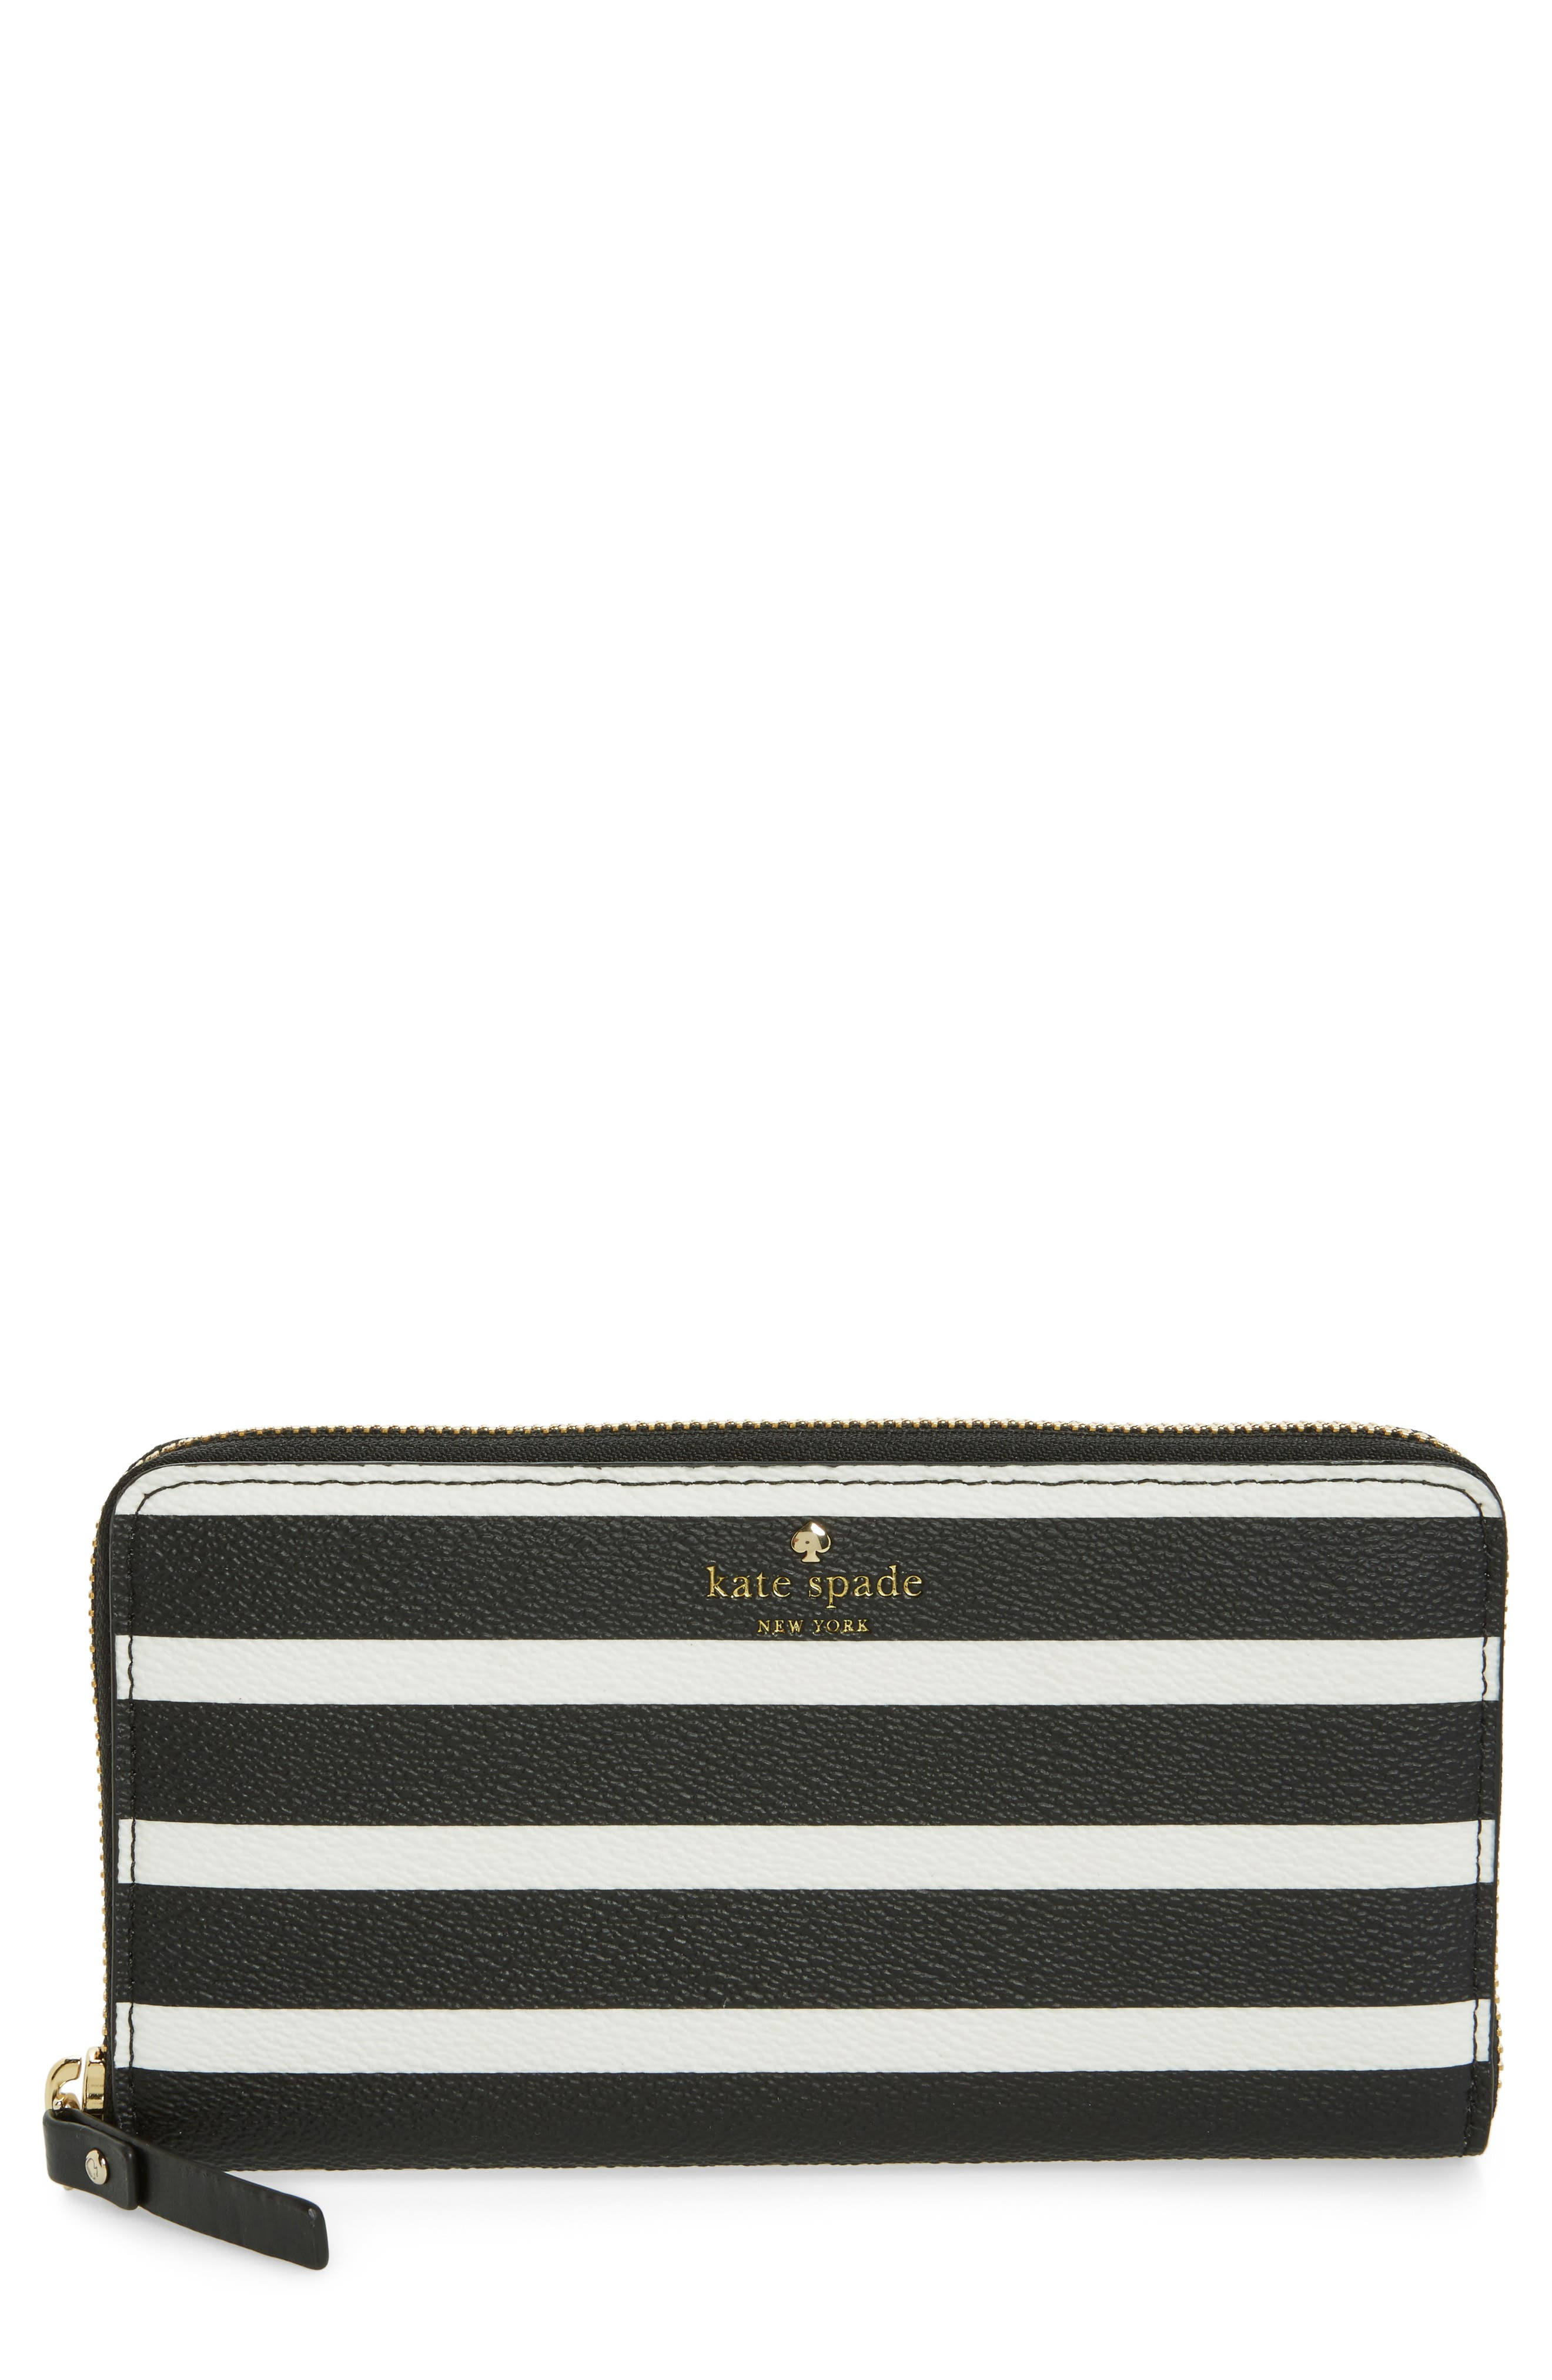 KATE SPADE NEW YORK hyde lane - michele stripe wallet